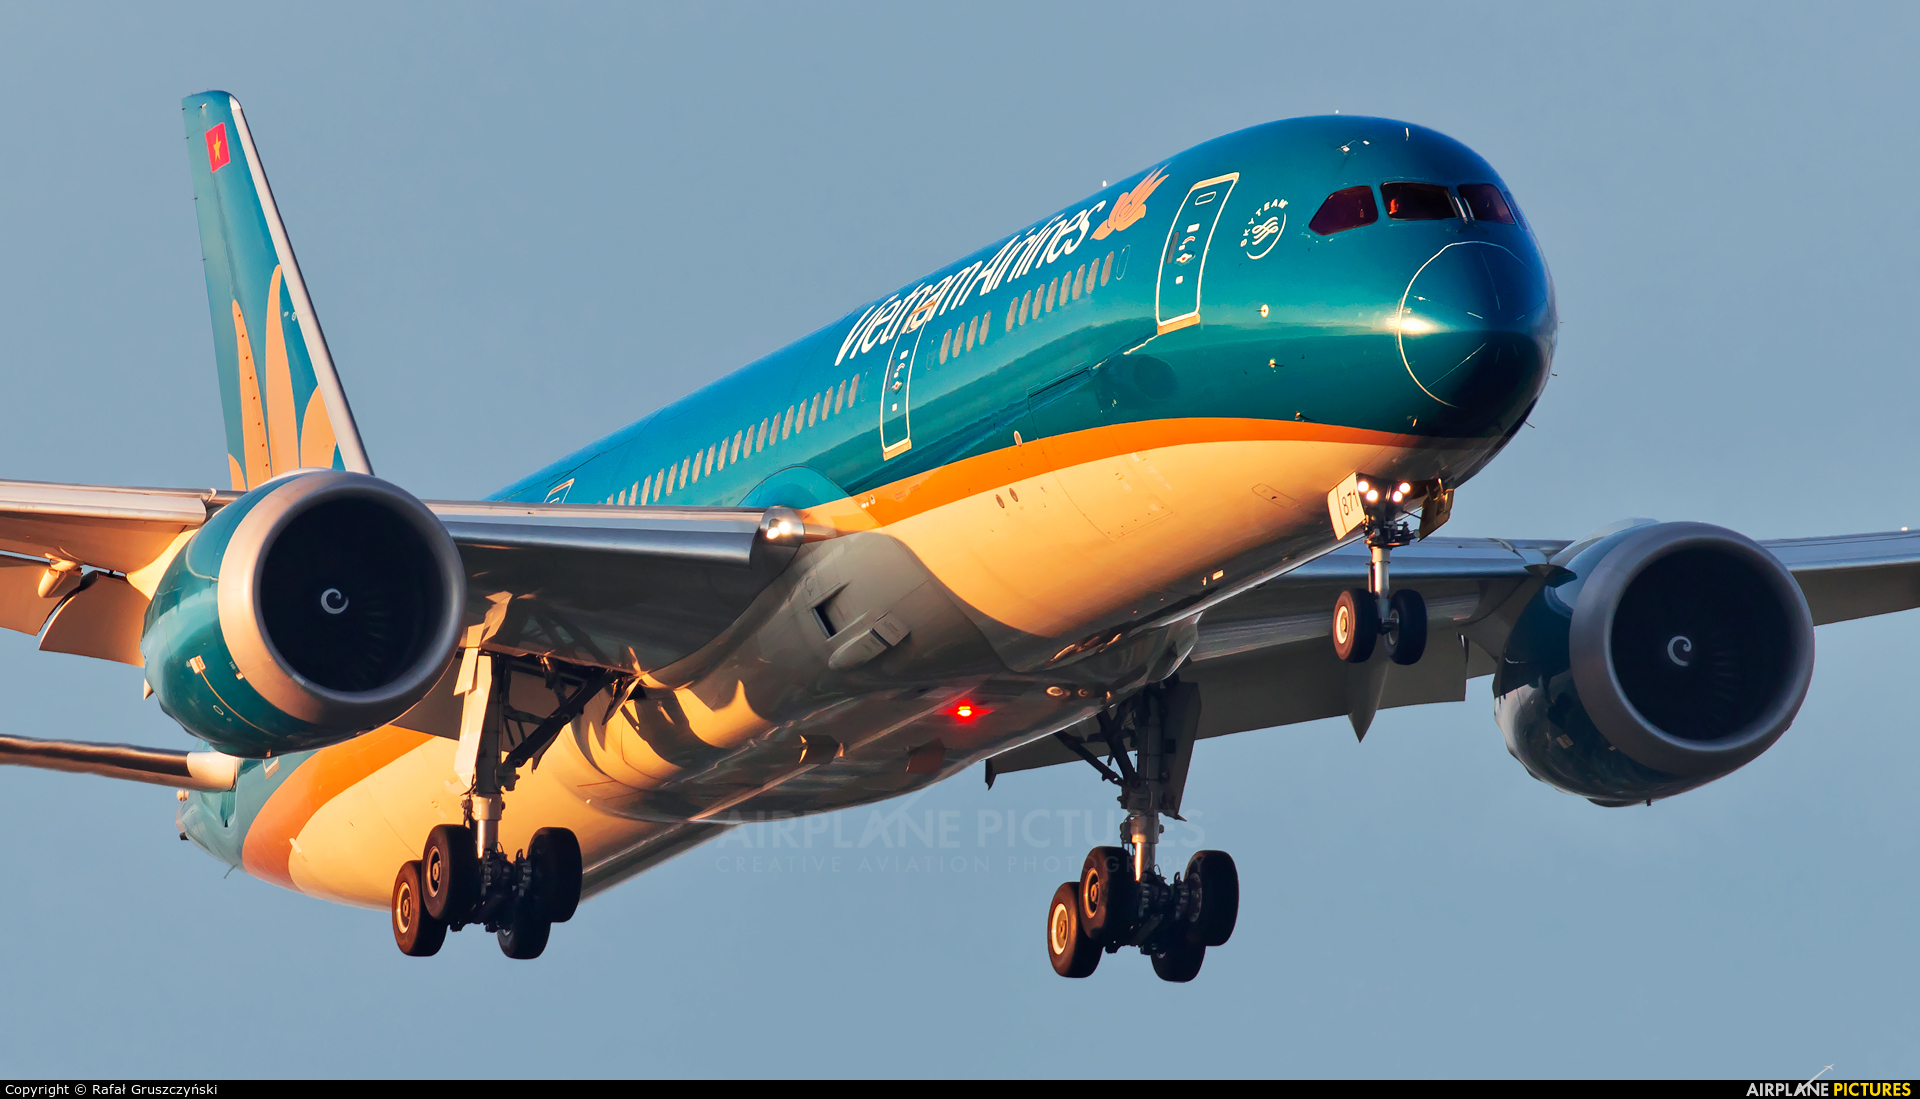 Vietnam Airlines VN-A871 aircraft at Warsaw - Frederic Chopin